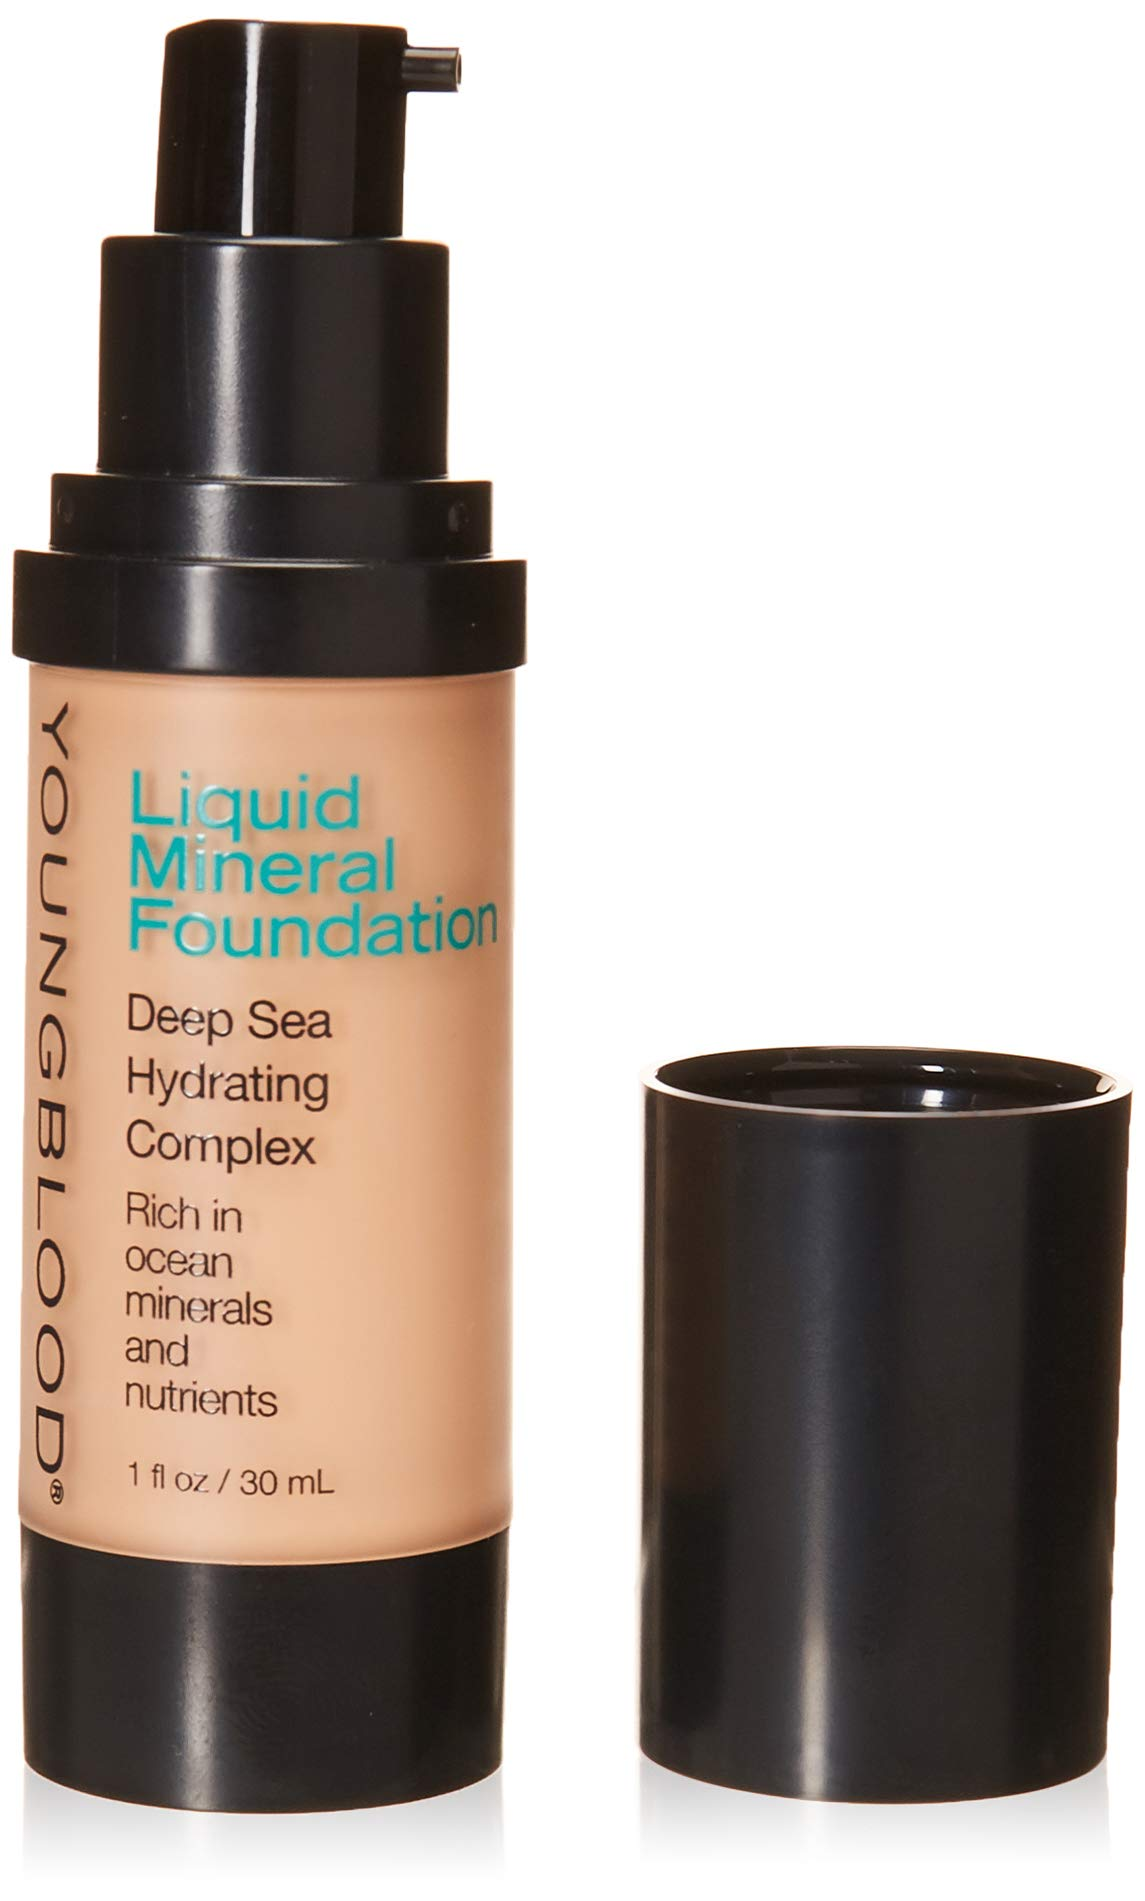 Youngblood Clean Luxury Cosmetics Liquid Mineral Foundation, Pebble | Dewy Mineral Lightweight Full Coverage Makeup for Dry Skin Poreless Flawless Tinted Glow | Vegan, Cruelty-Free, Gluten-Free by Youngblood